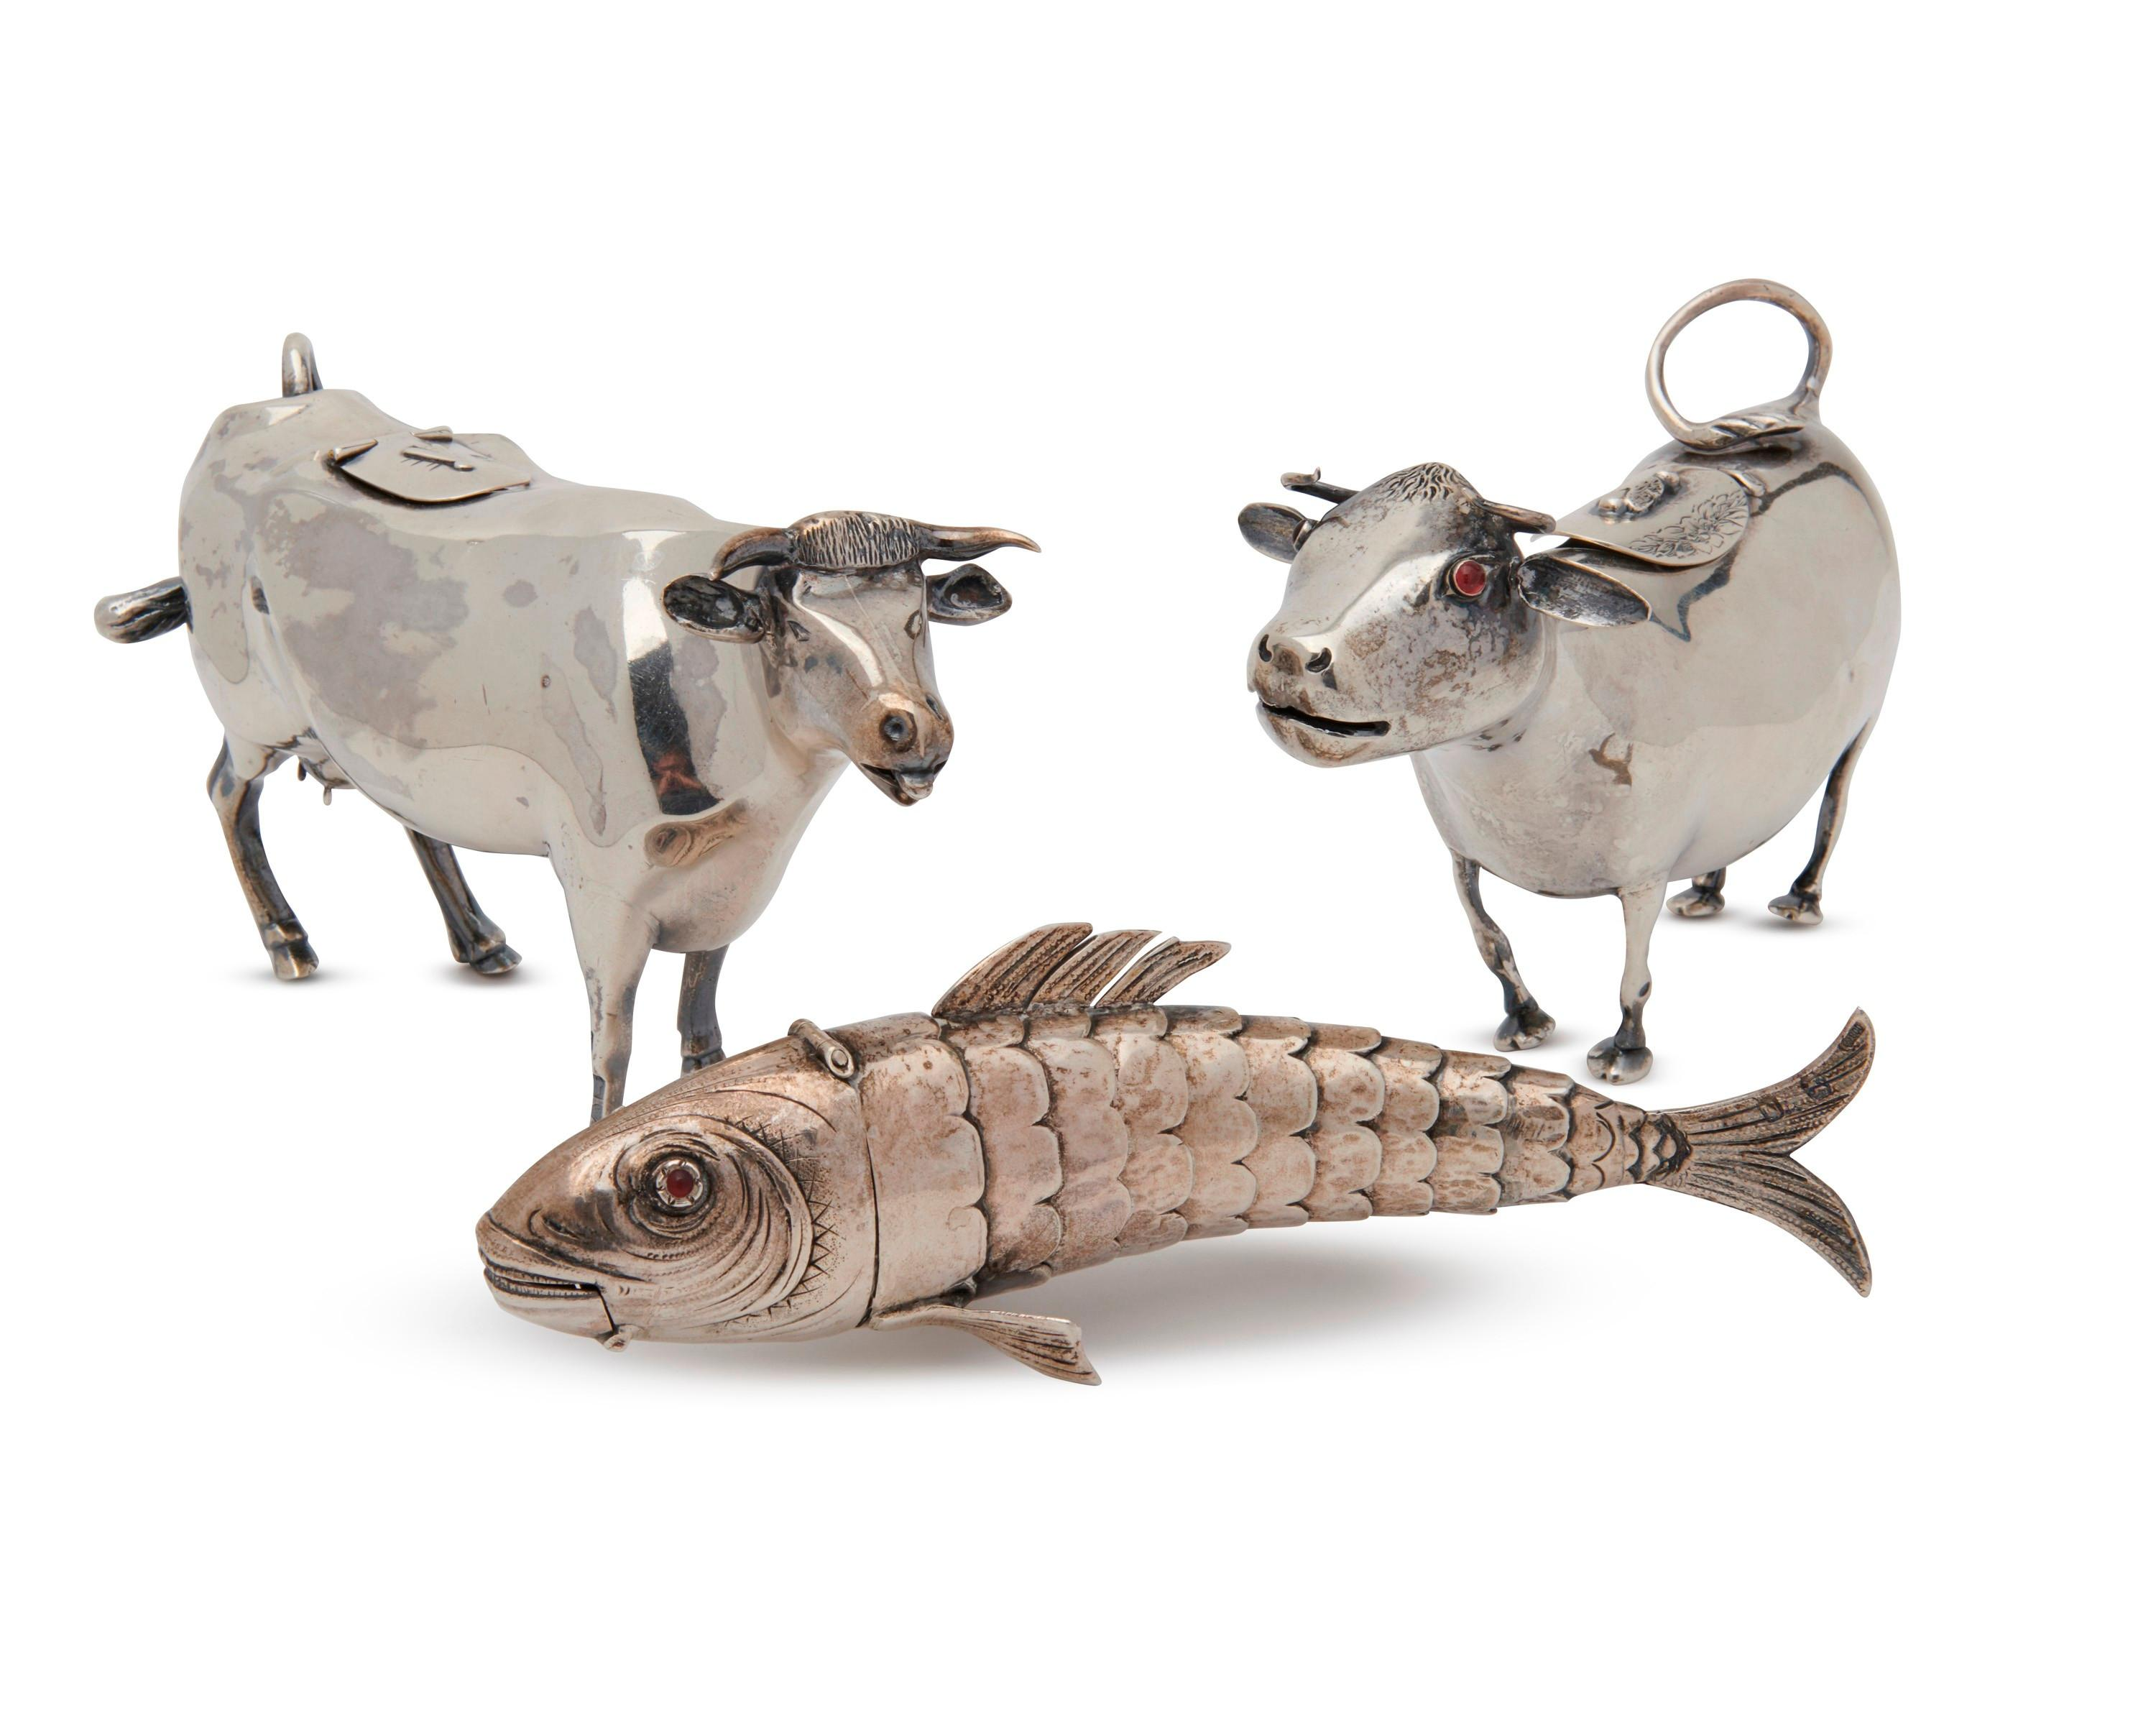 Pair of English Silver Cow Creamers and a Continental Silver Reticulated Fish Snuff/Pill Box, late 19th/early 20th century